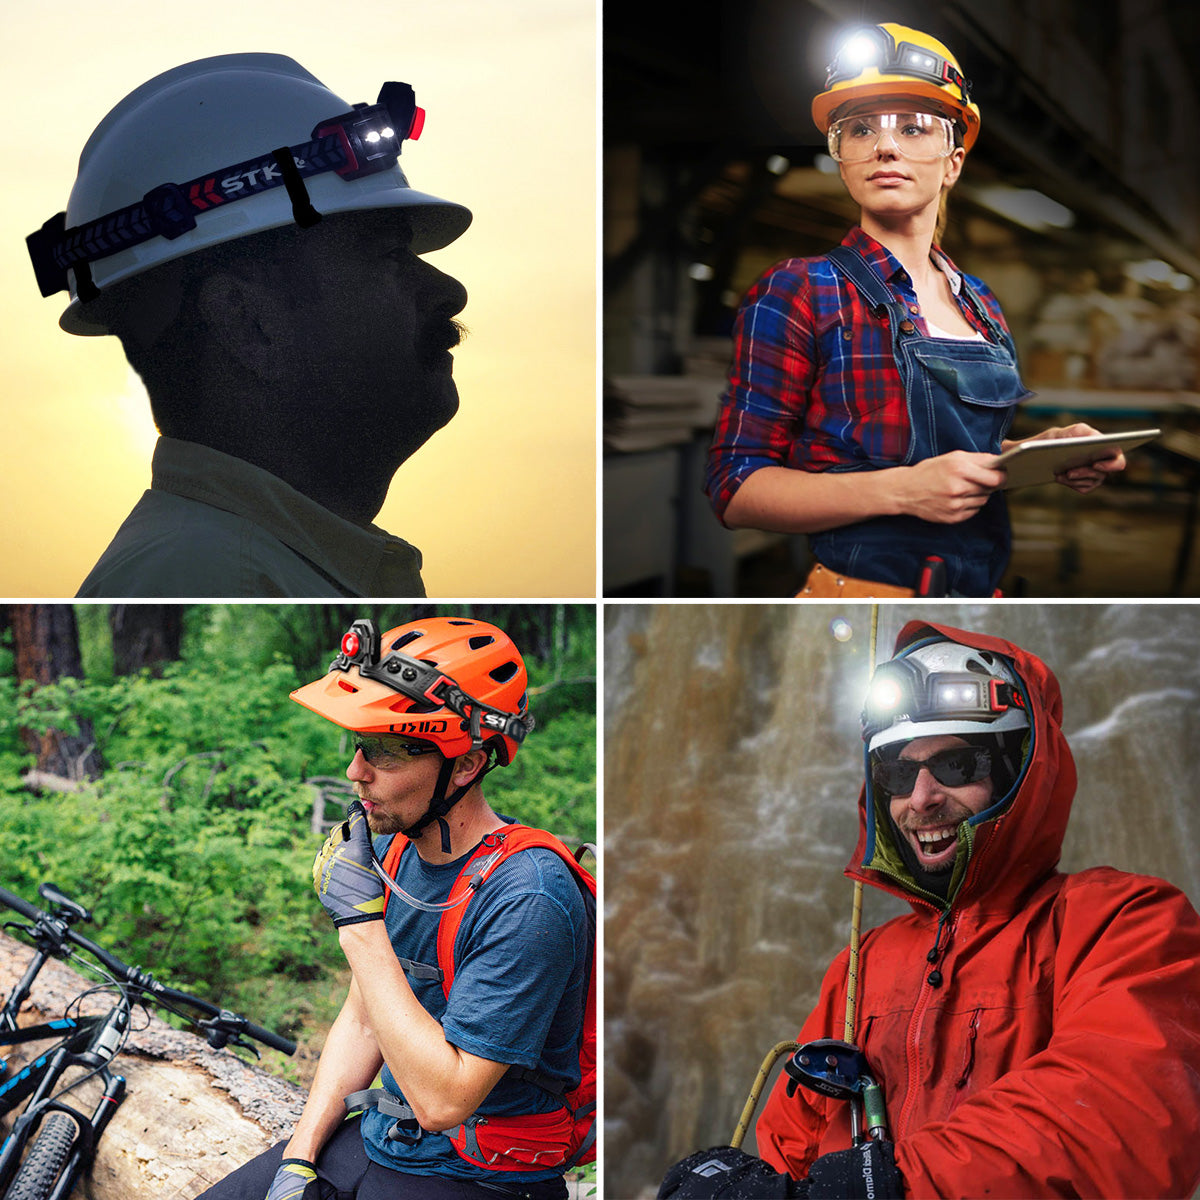 use the FLEXiT Headlamp for activities like cycling, construction, diy, climbing and much more